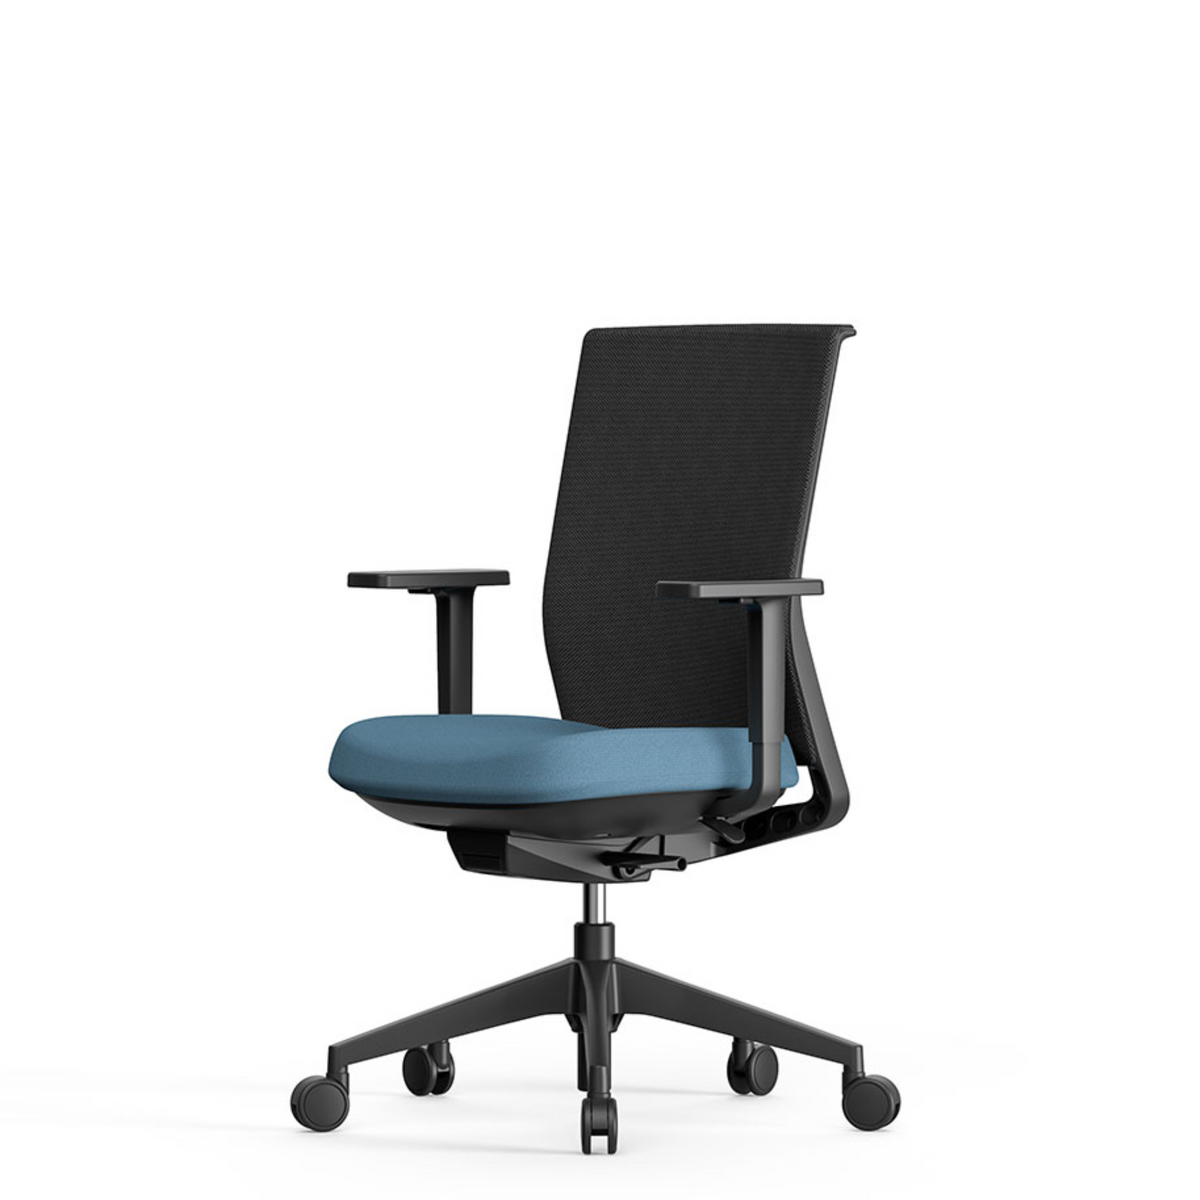 Actiu Office Stay Task Chair - Mesh Back Sky Blue